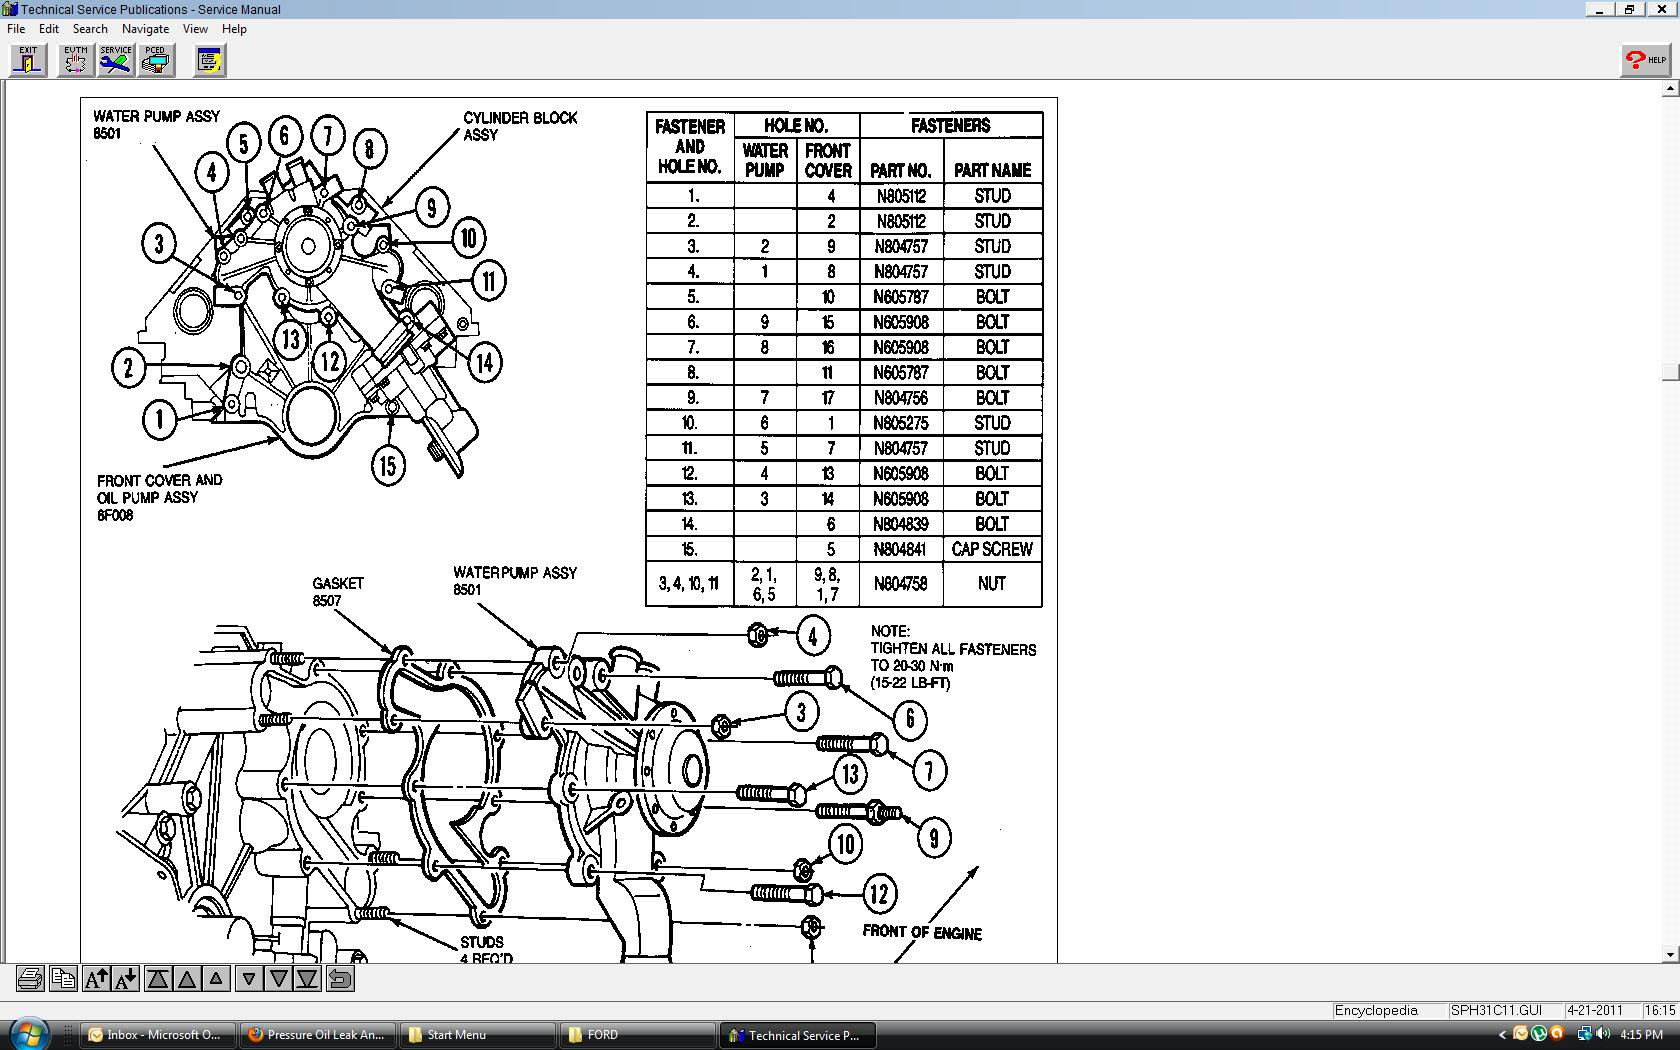 1941 Ford Pickup Wiring Diagram. 1969 Ford F100 Wiring Diagram ...  Ford Engine Wiring Diagram on 1929 ford model a ammeter diagram, model a brakes diagram, model t diagram,